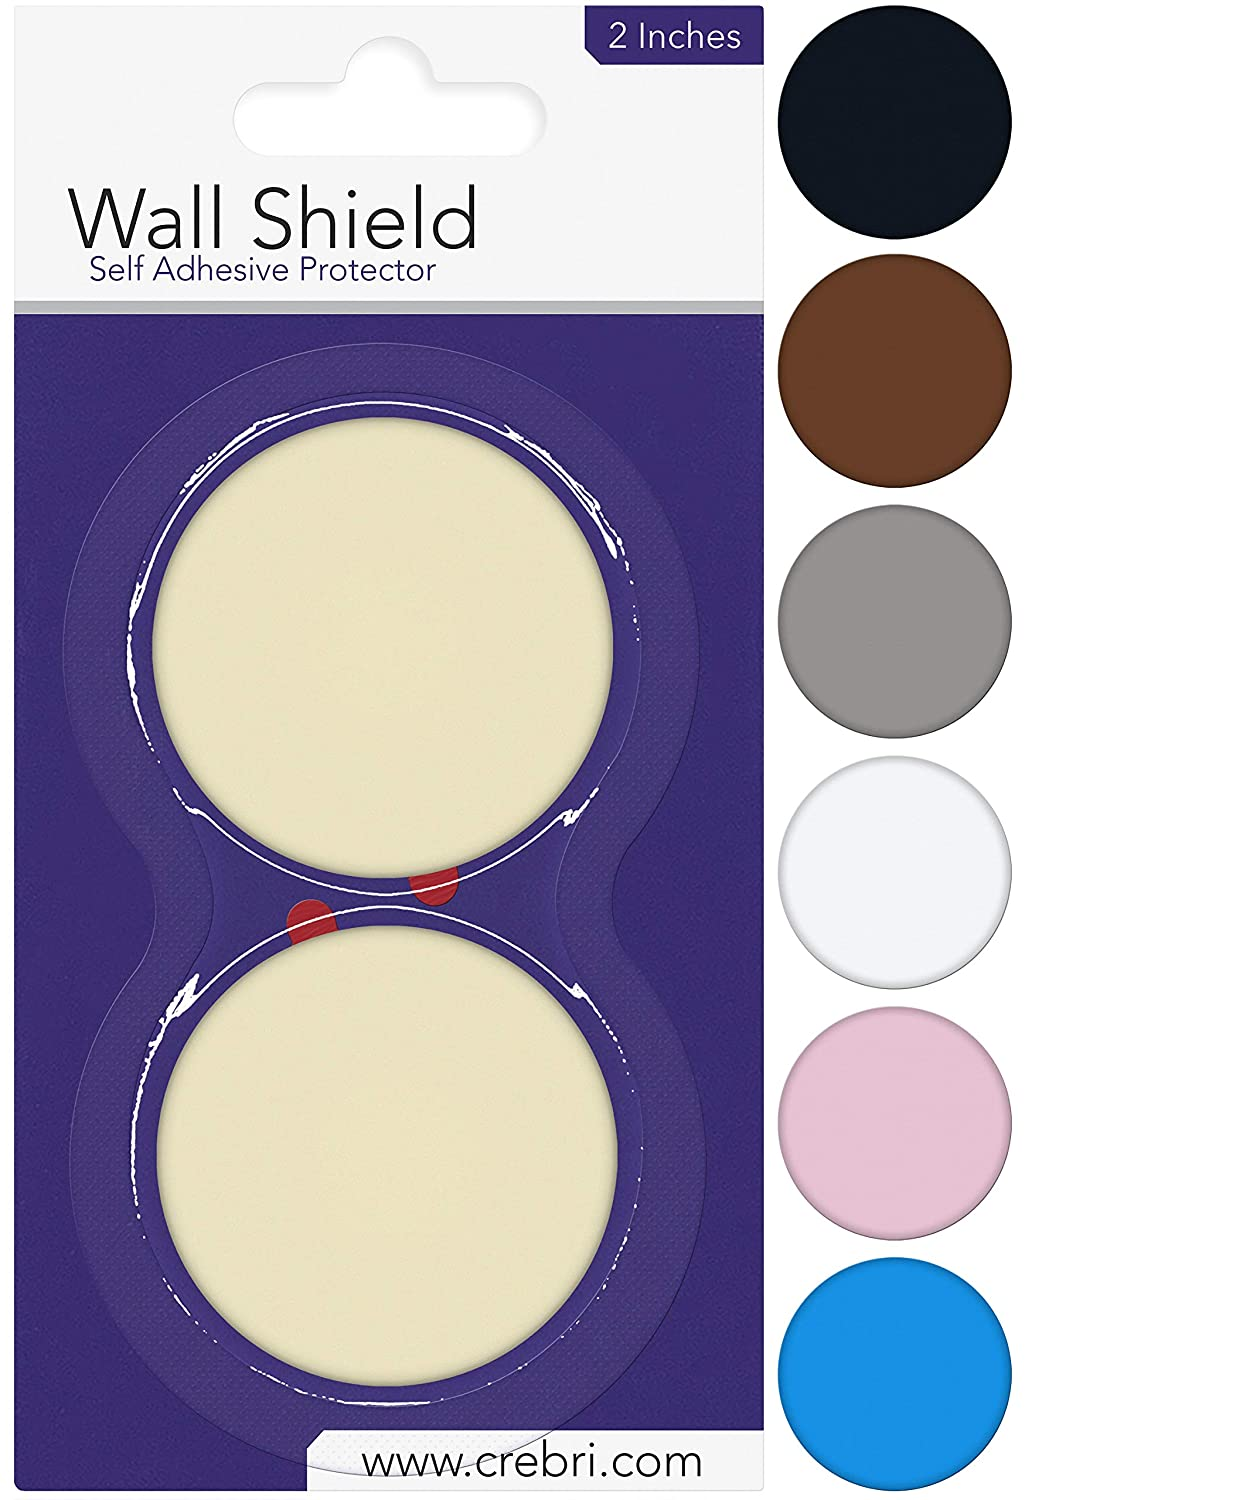 Silicone Wall Protectors from Door knobs Ivory - Self Adhesive Round Plate - Door Bumper Pads Ivory - Rubber Door Handle Bumper Guard for Door Knob, Kitchen, Office White (2inch, Beige/Ivory)